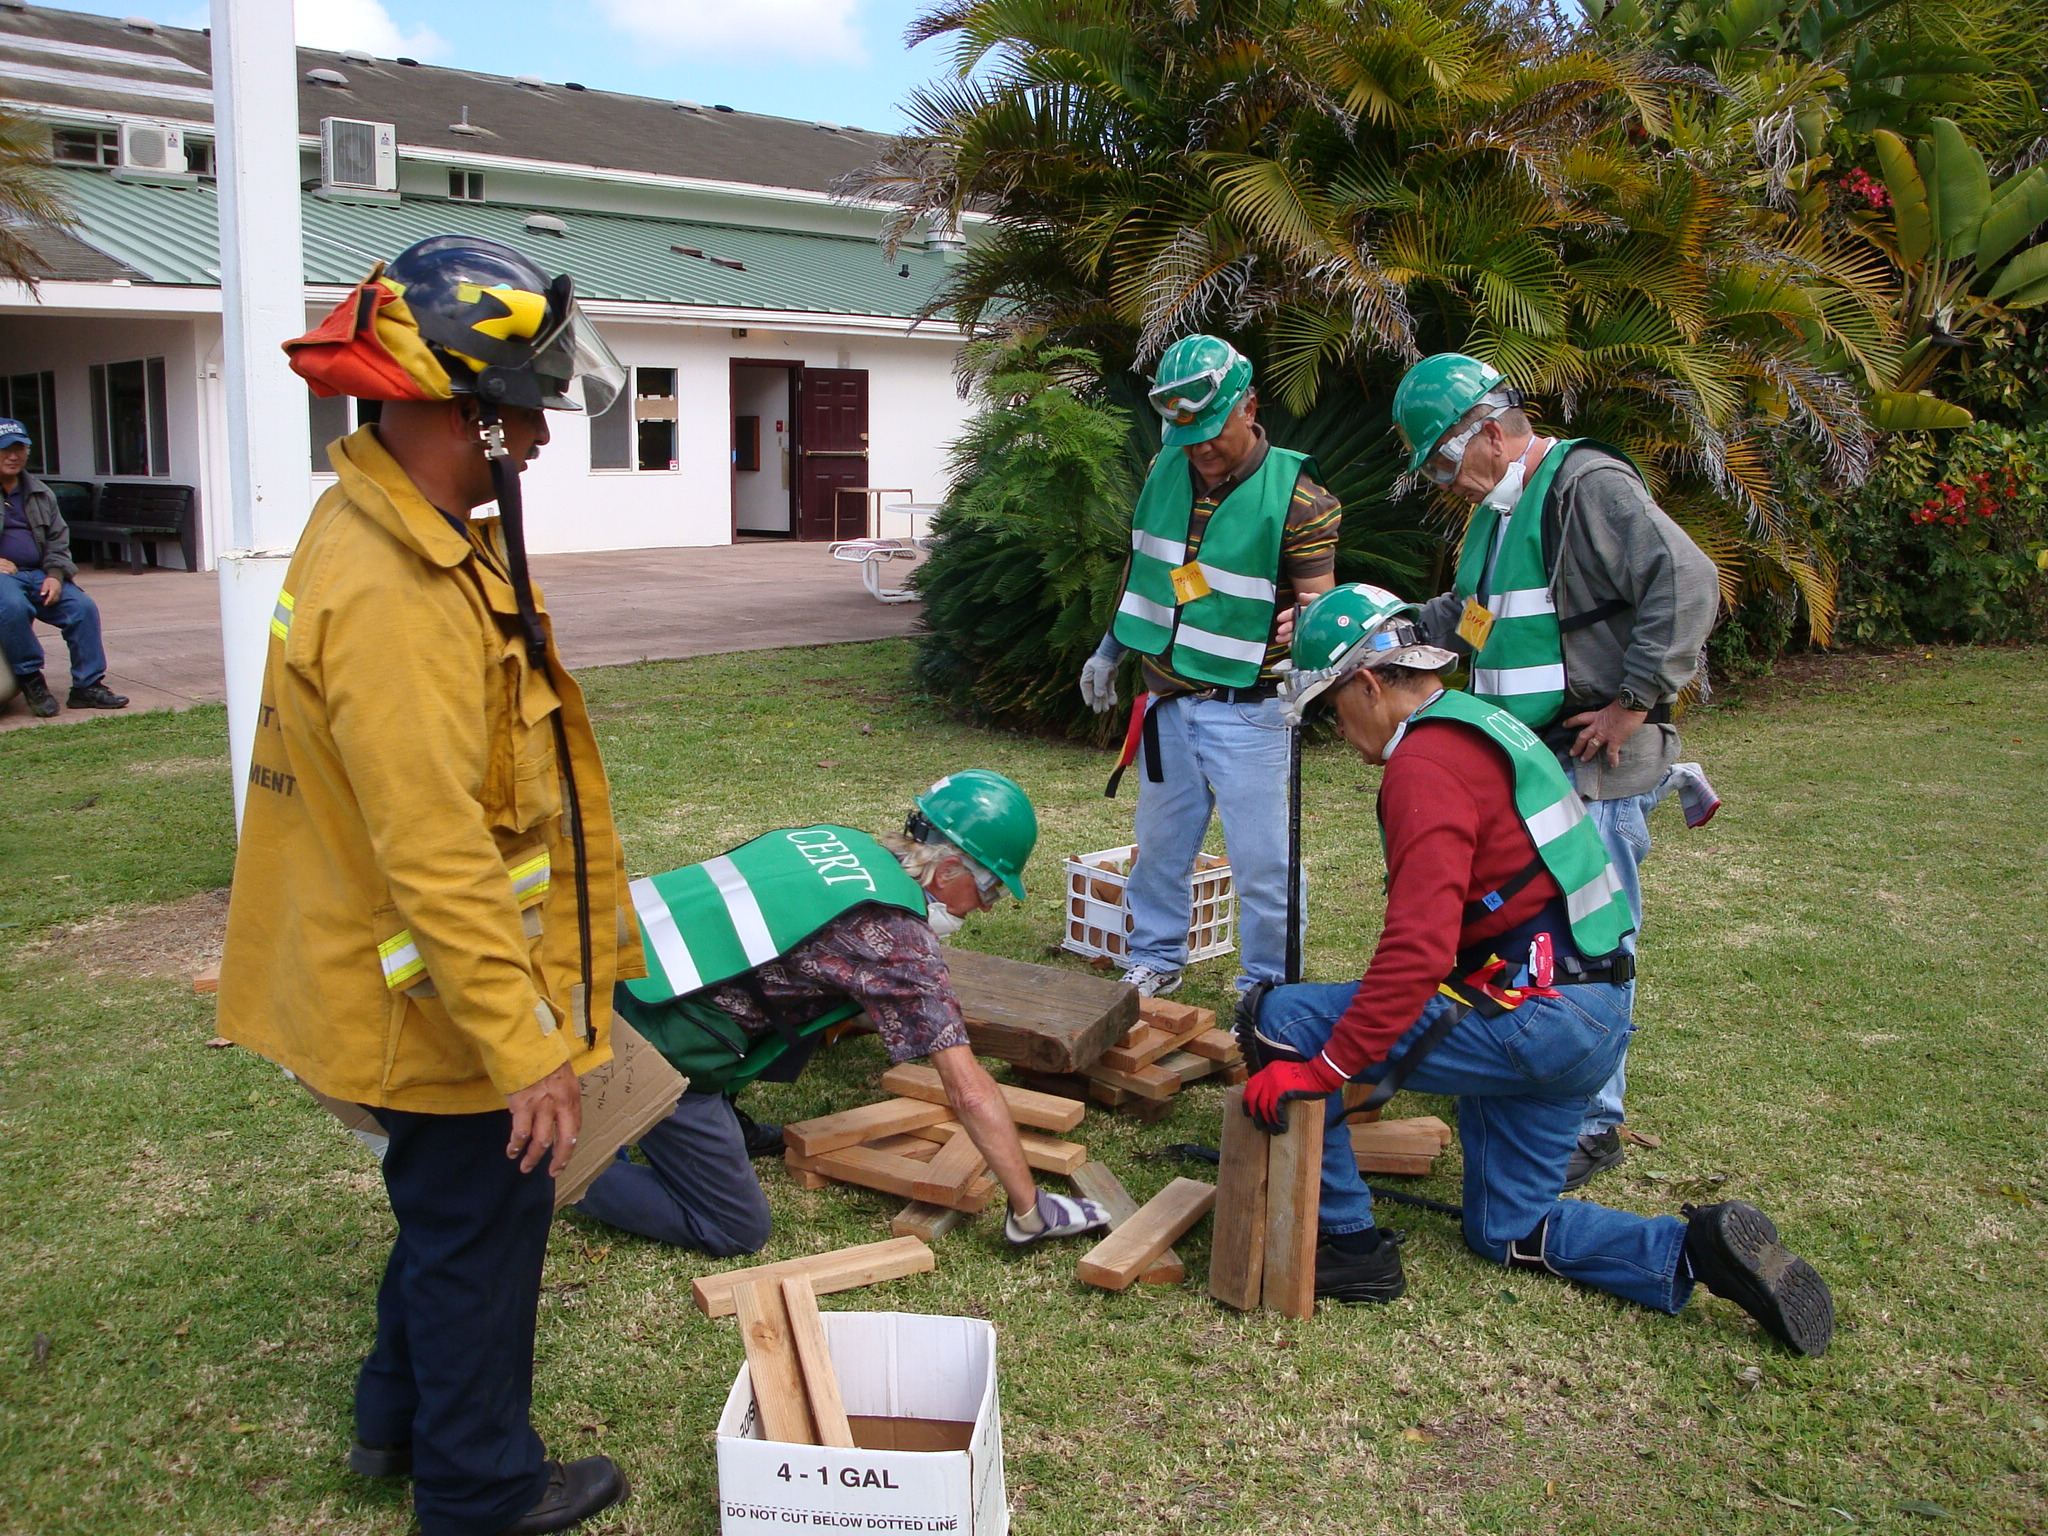 Firefighter supervising a drill during the Community Emergency Response Team (CERT) program. Photo courtesy of Maui County.